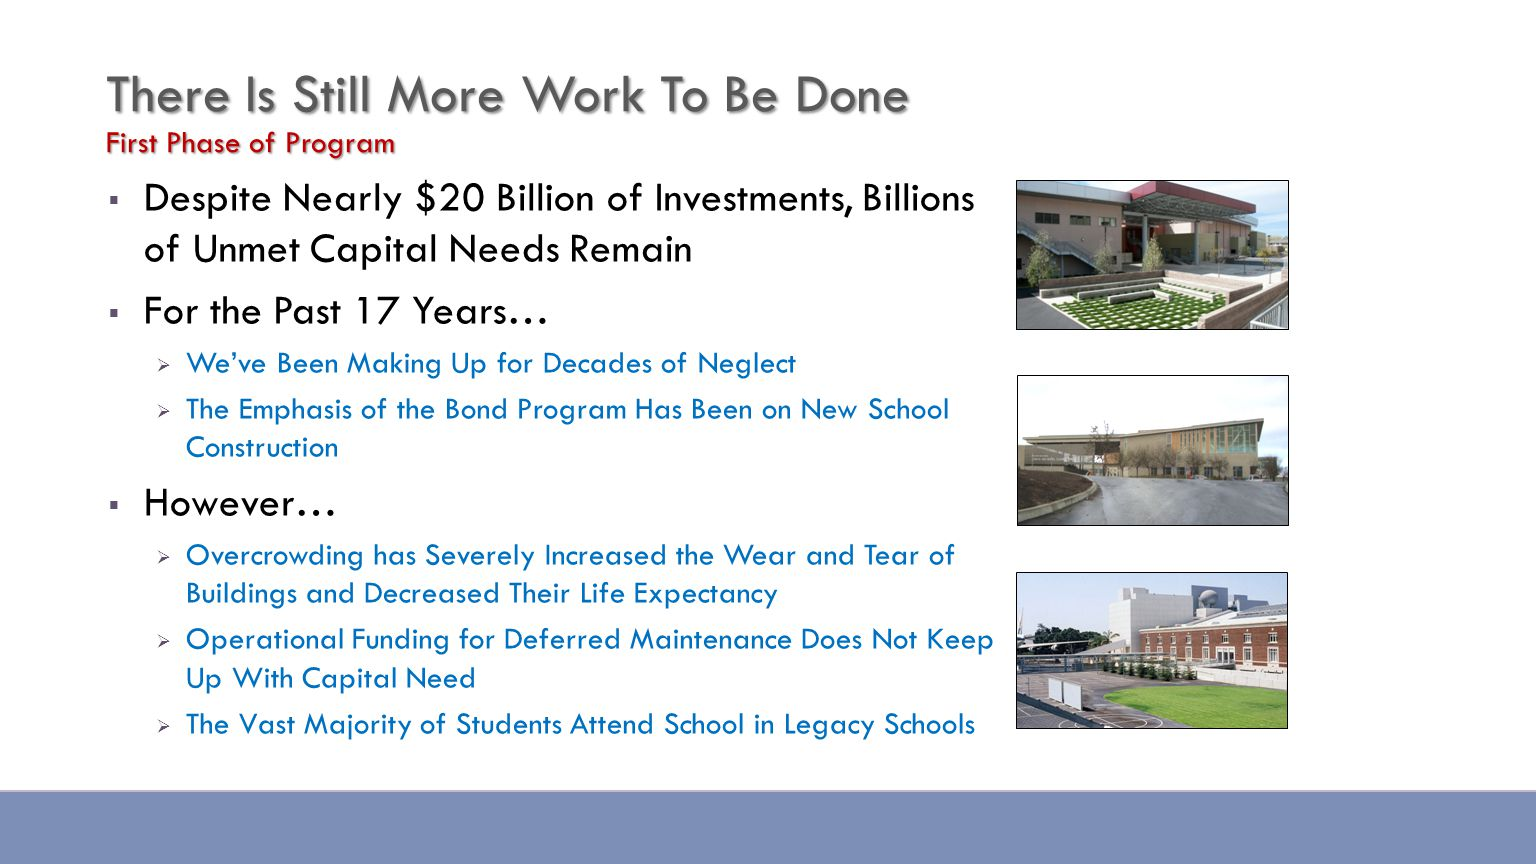  Despite Nearly $20 Billion of Investments, Billions of Unmet Capital Needs Remain  For the Past 17 Years…  We've Been Making Up for Decades of Neglect  The Emphasis of the Bond Program Has Been on New School Construction  However…  Overcrowding has Severely Increased the Wear and Tear of Buildings and Decreased Their Life Expectancy  Operational Funding for Deferred Maintenance Does Not Keep Up With Capital Need  The Vast Majority of Students Attend School in Legacy Schools There Is Still More Work To Be Done First Phase of Program